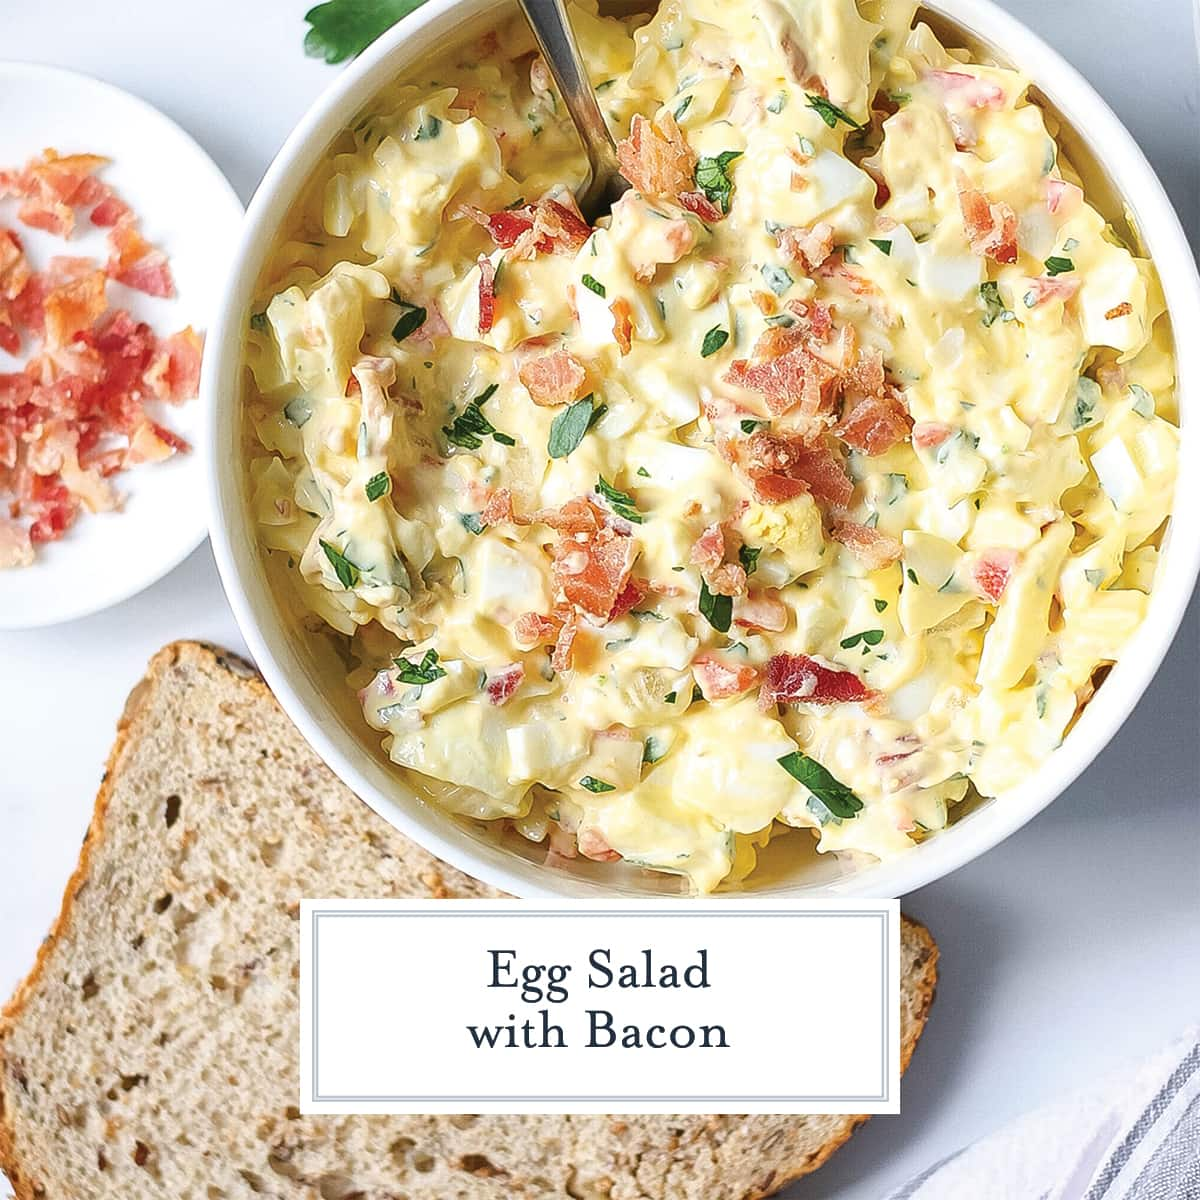 egg salad with a slice of bread and crumbled bacon